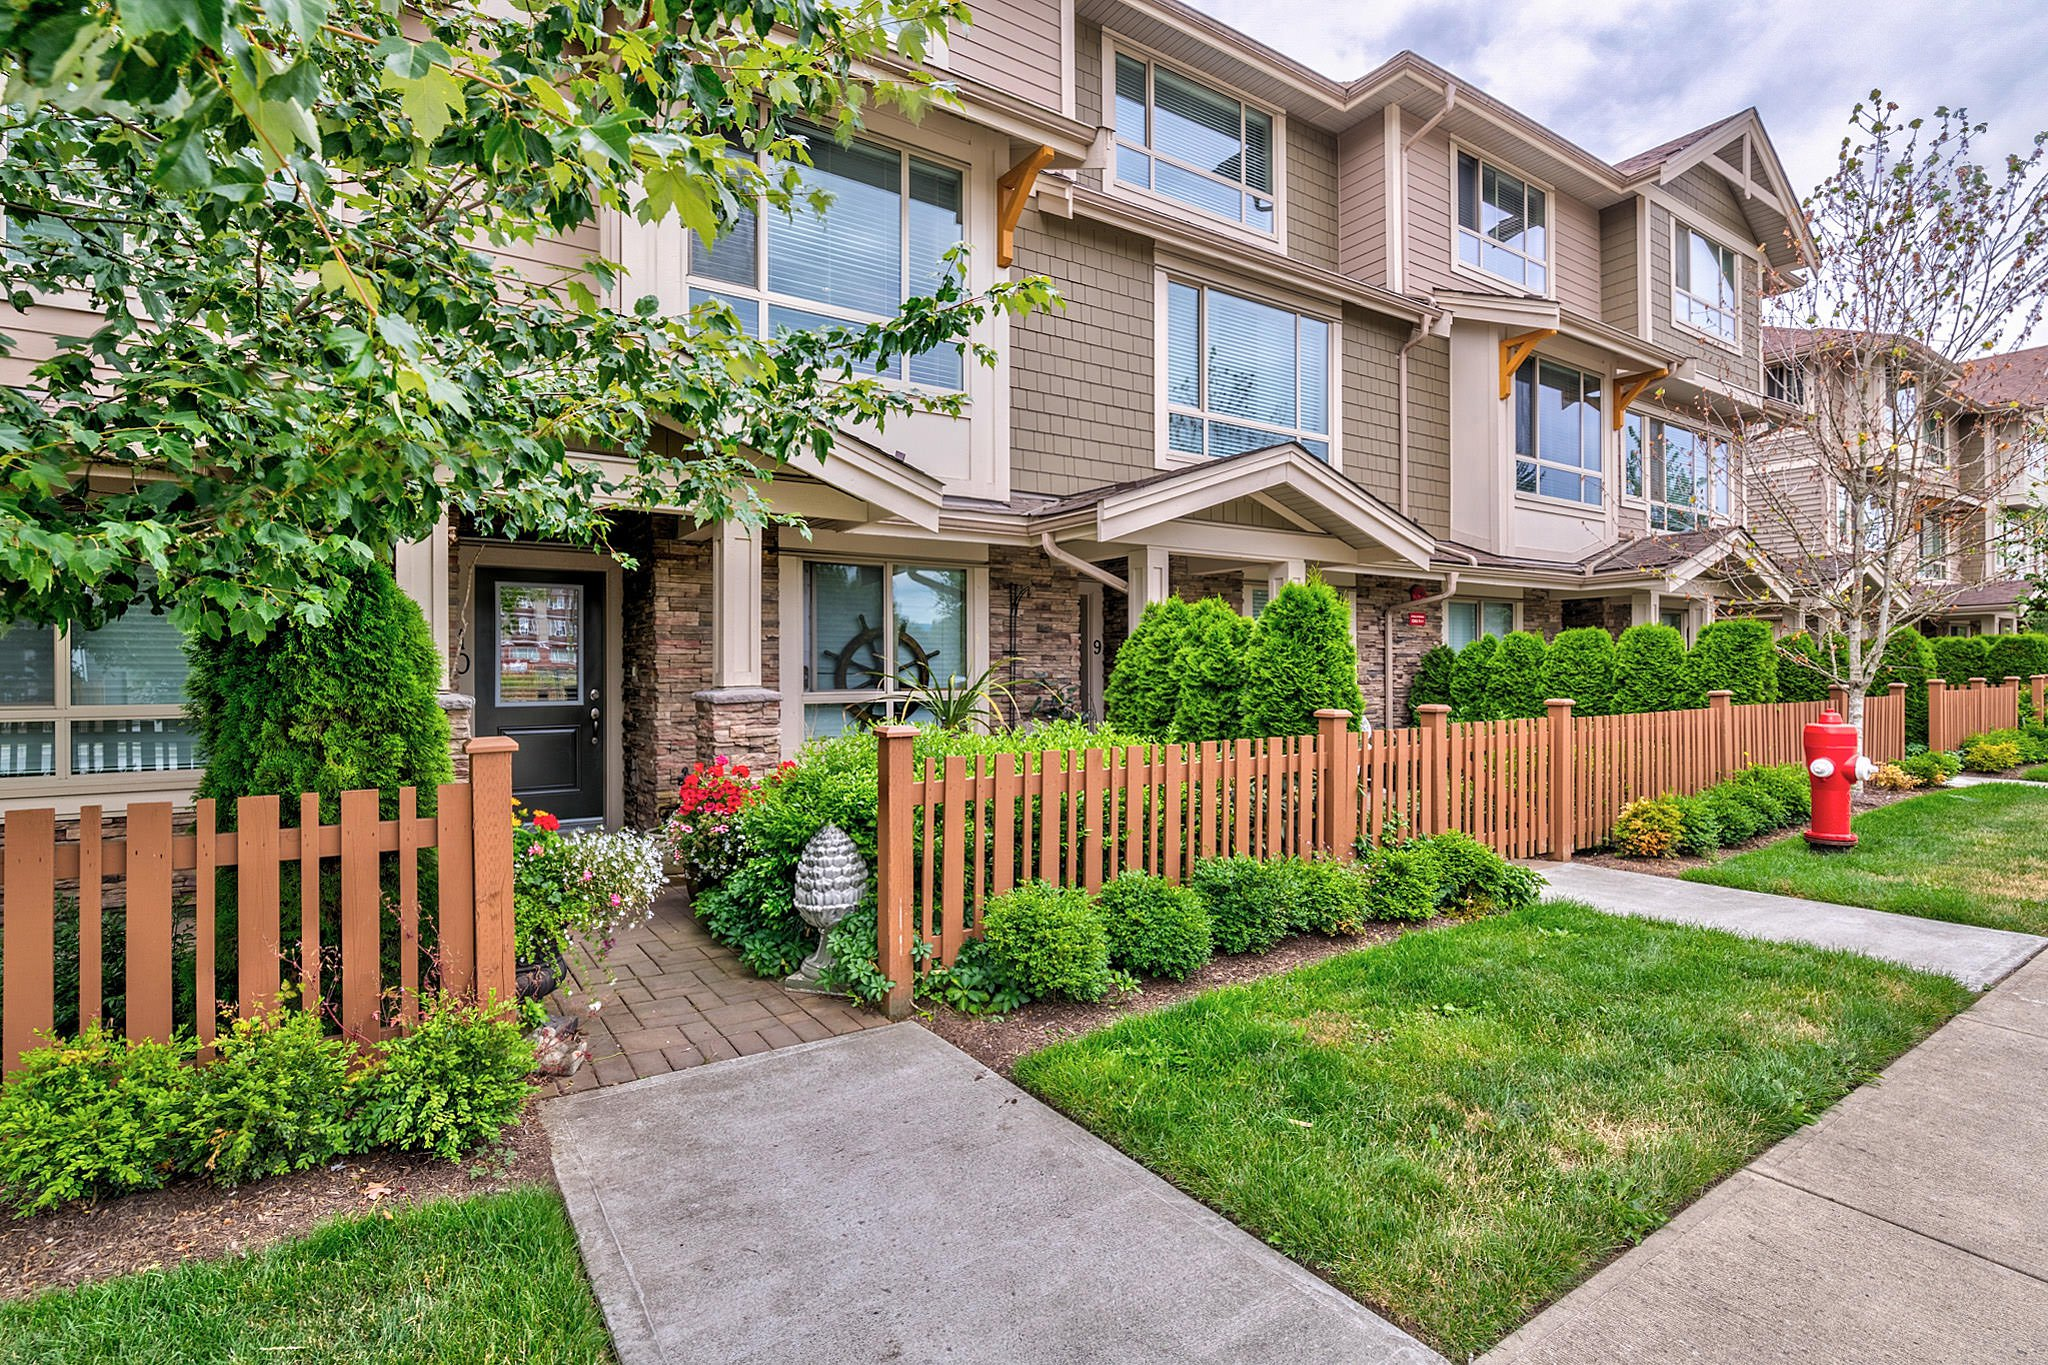 Main Photo: 10 19742 55A Street in Langley: Langley City Townhouse for sale : MLS®# R2388093